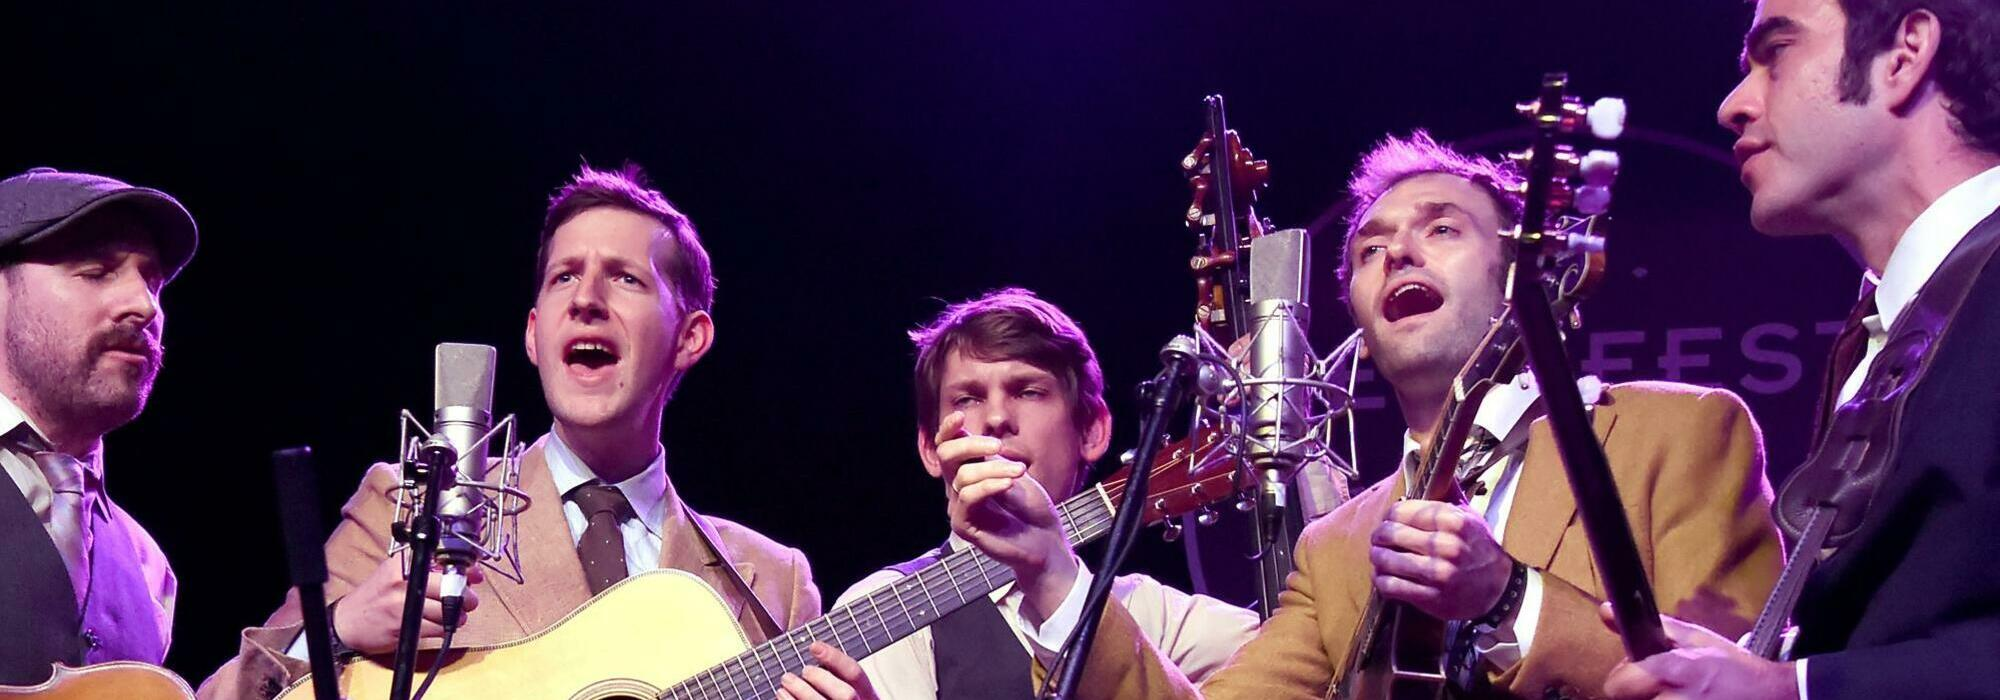 A Punch Brothers live event